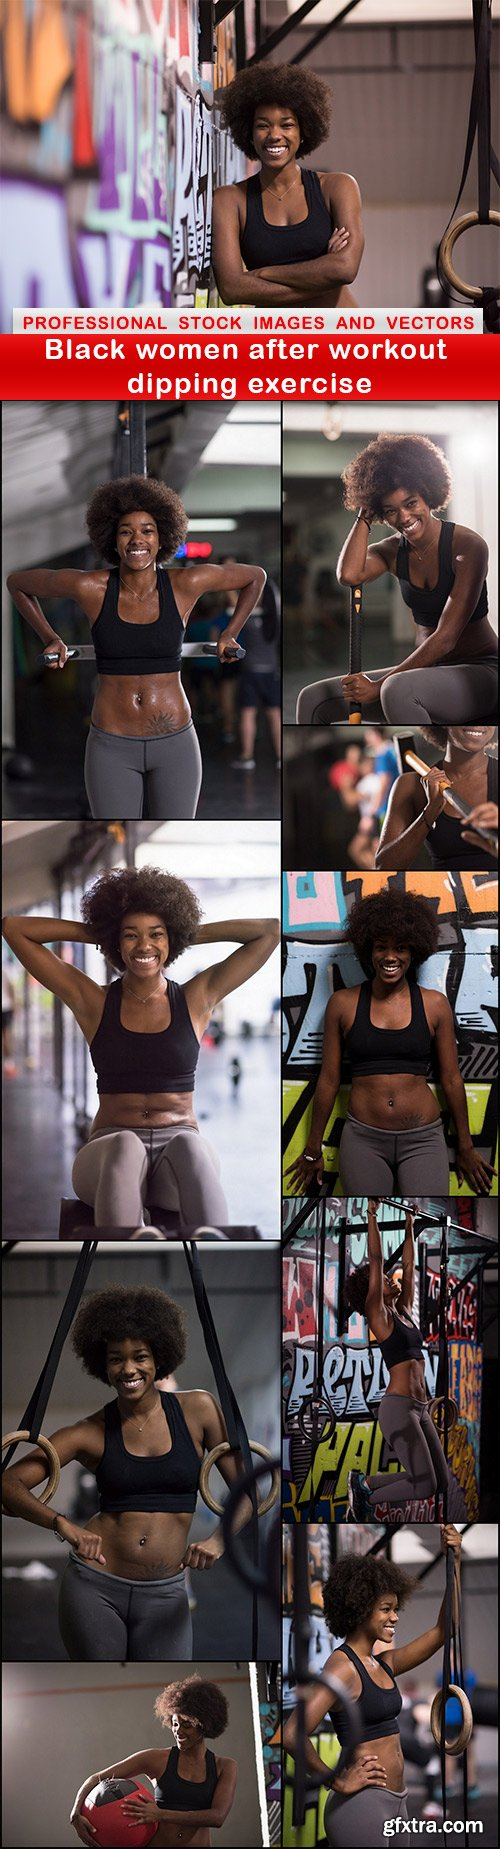 Black women after workout dipping exercise - 10 UHQ JPEG